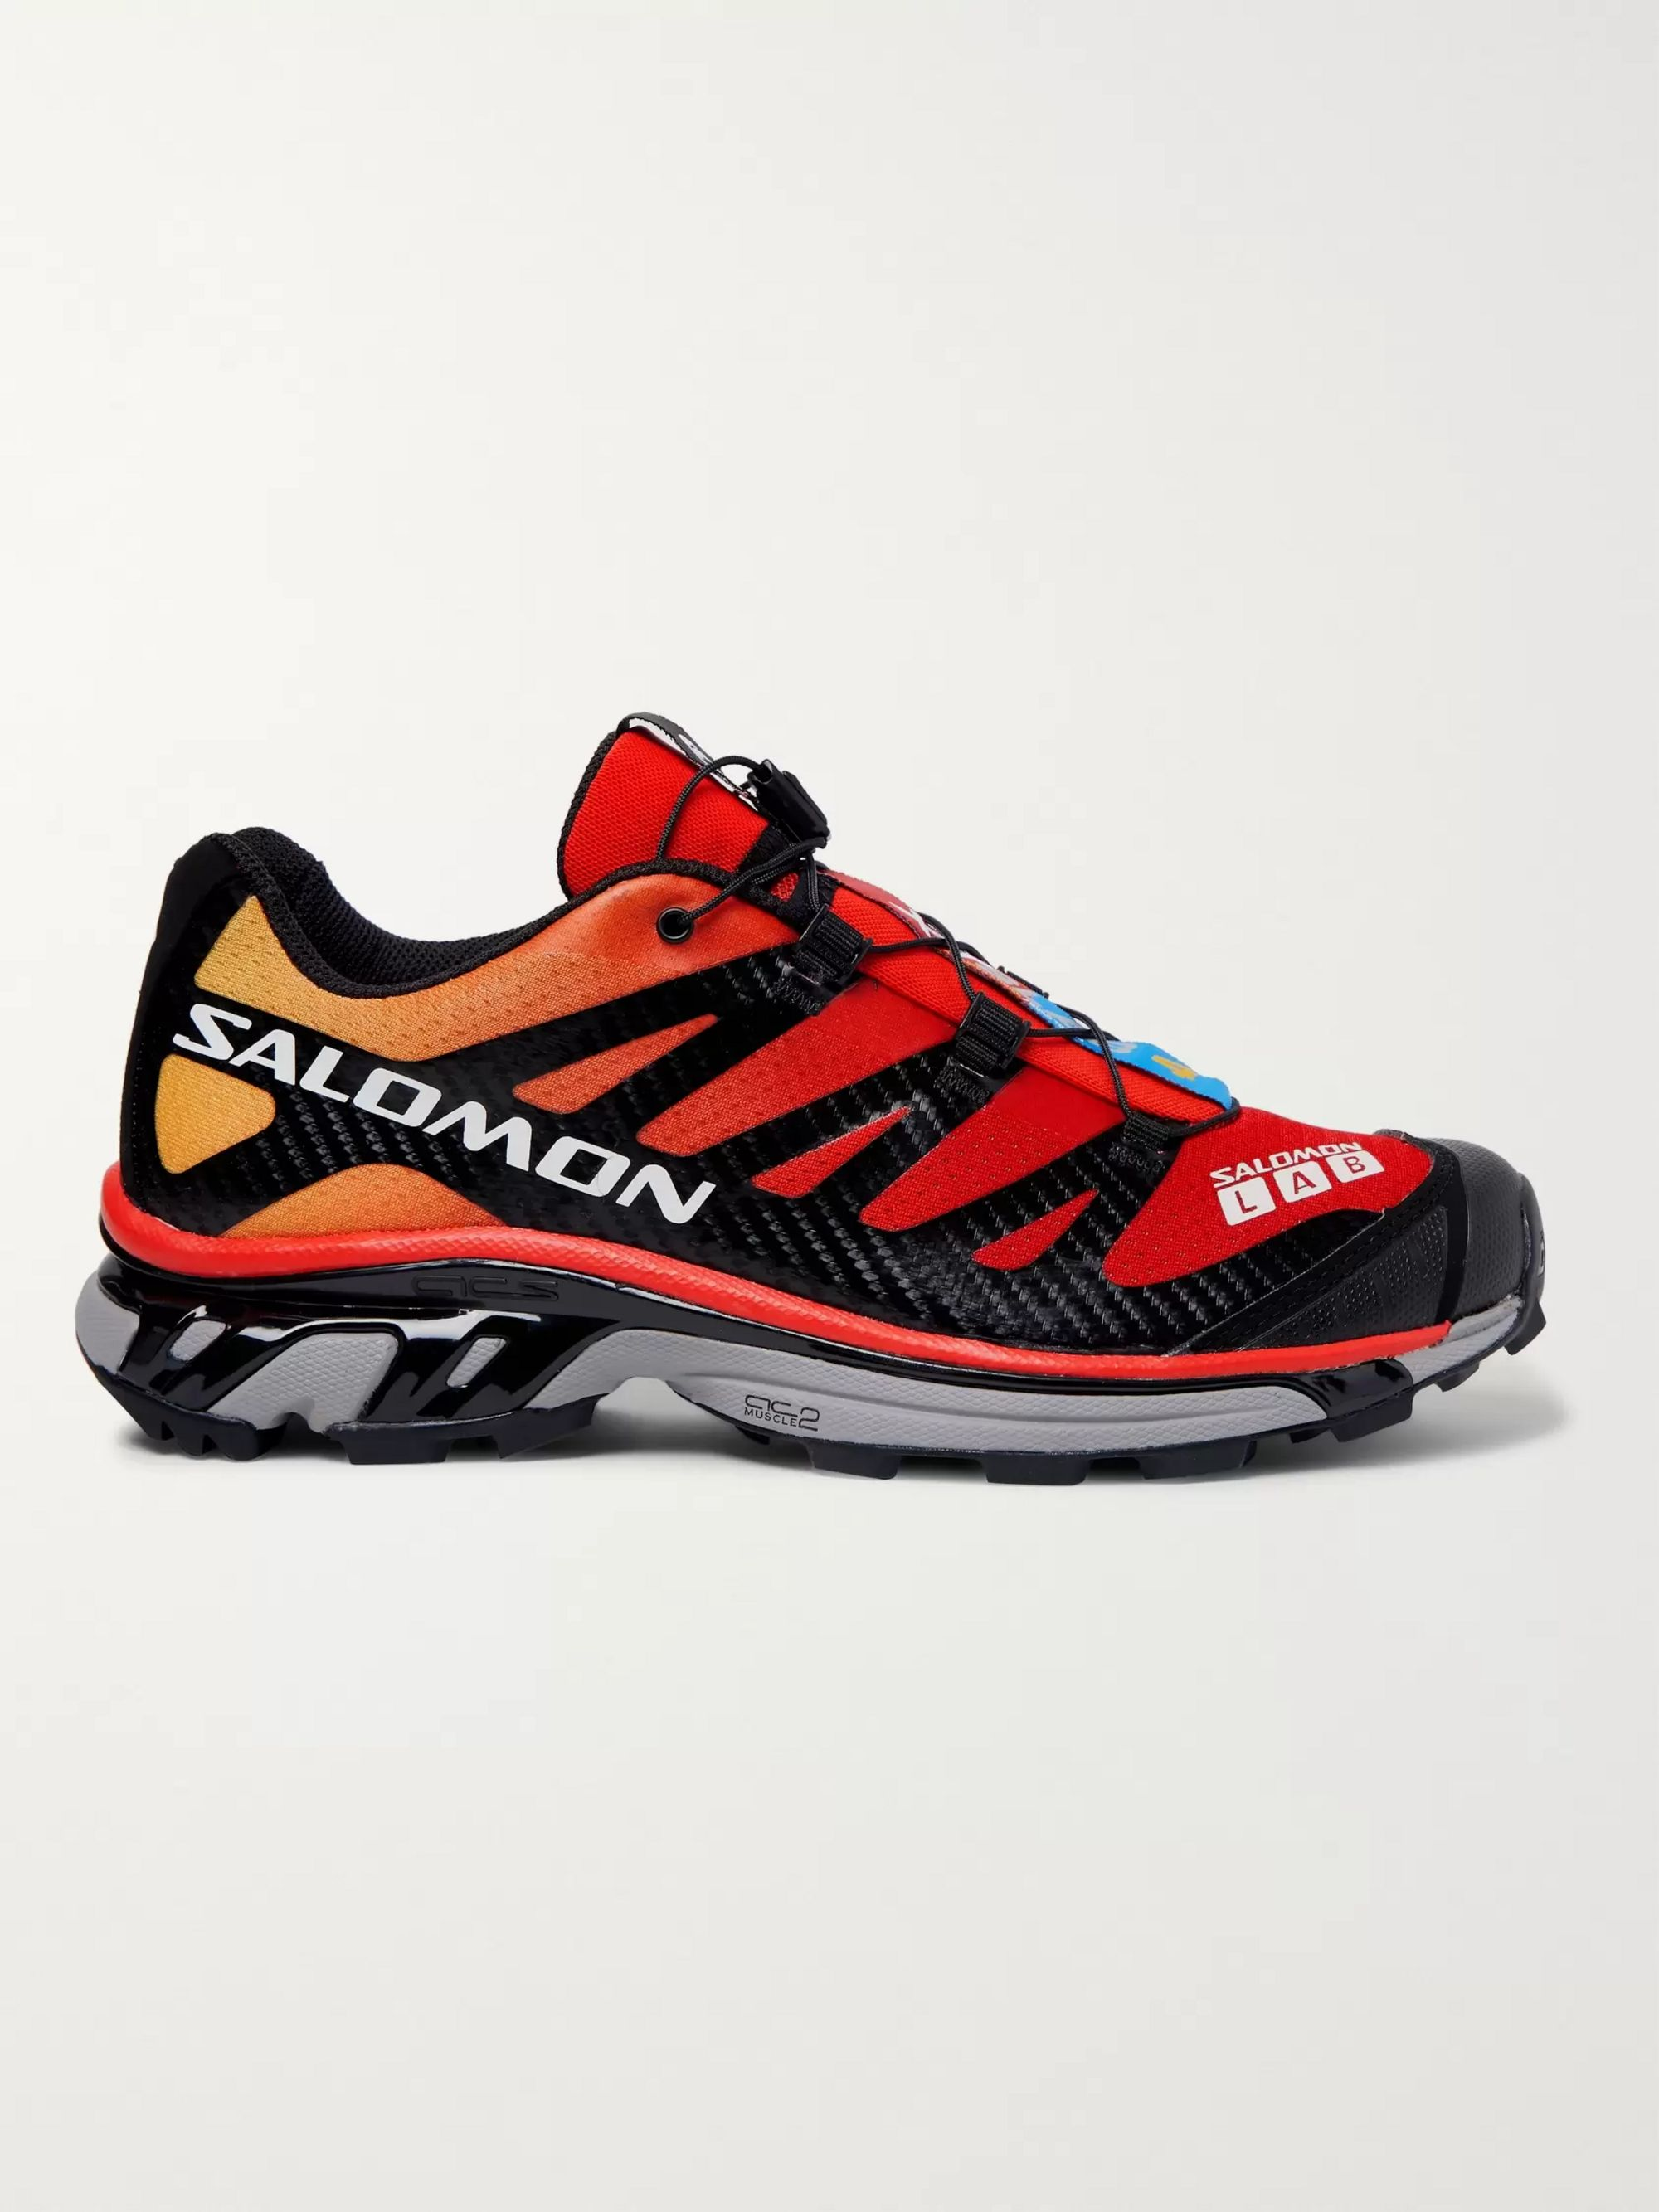 S/Lab Xt 4 Adv Mesh And Rubber Running Sneakers by Salomon